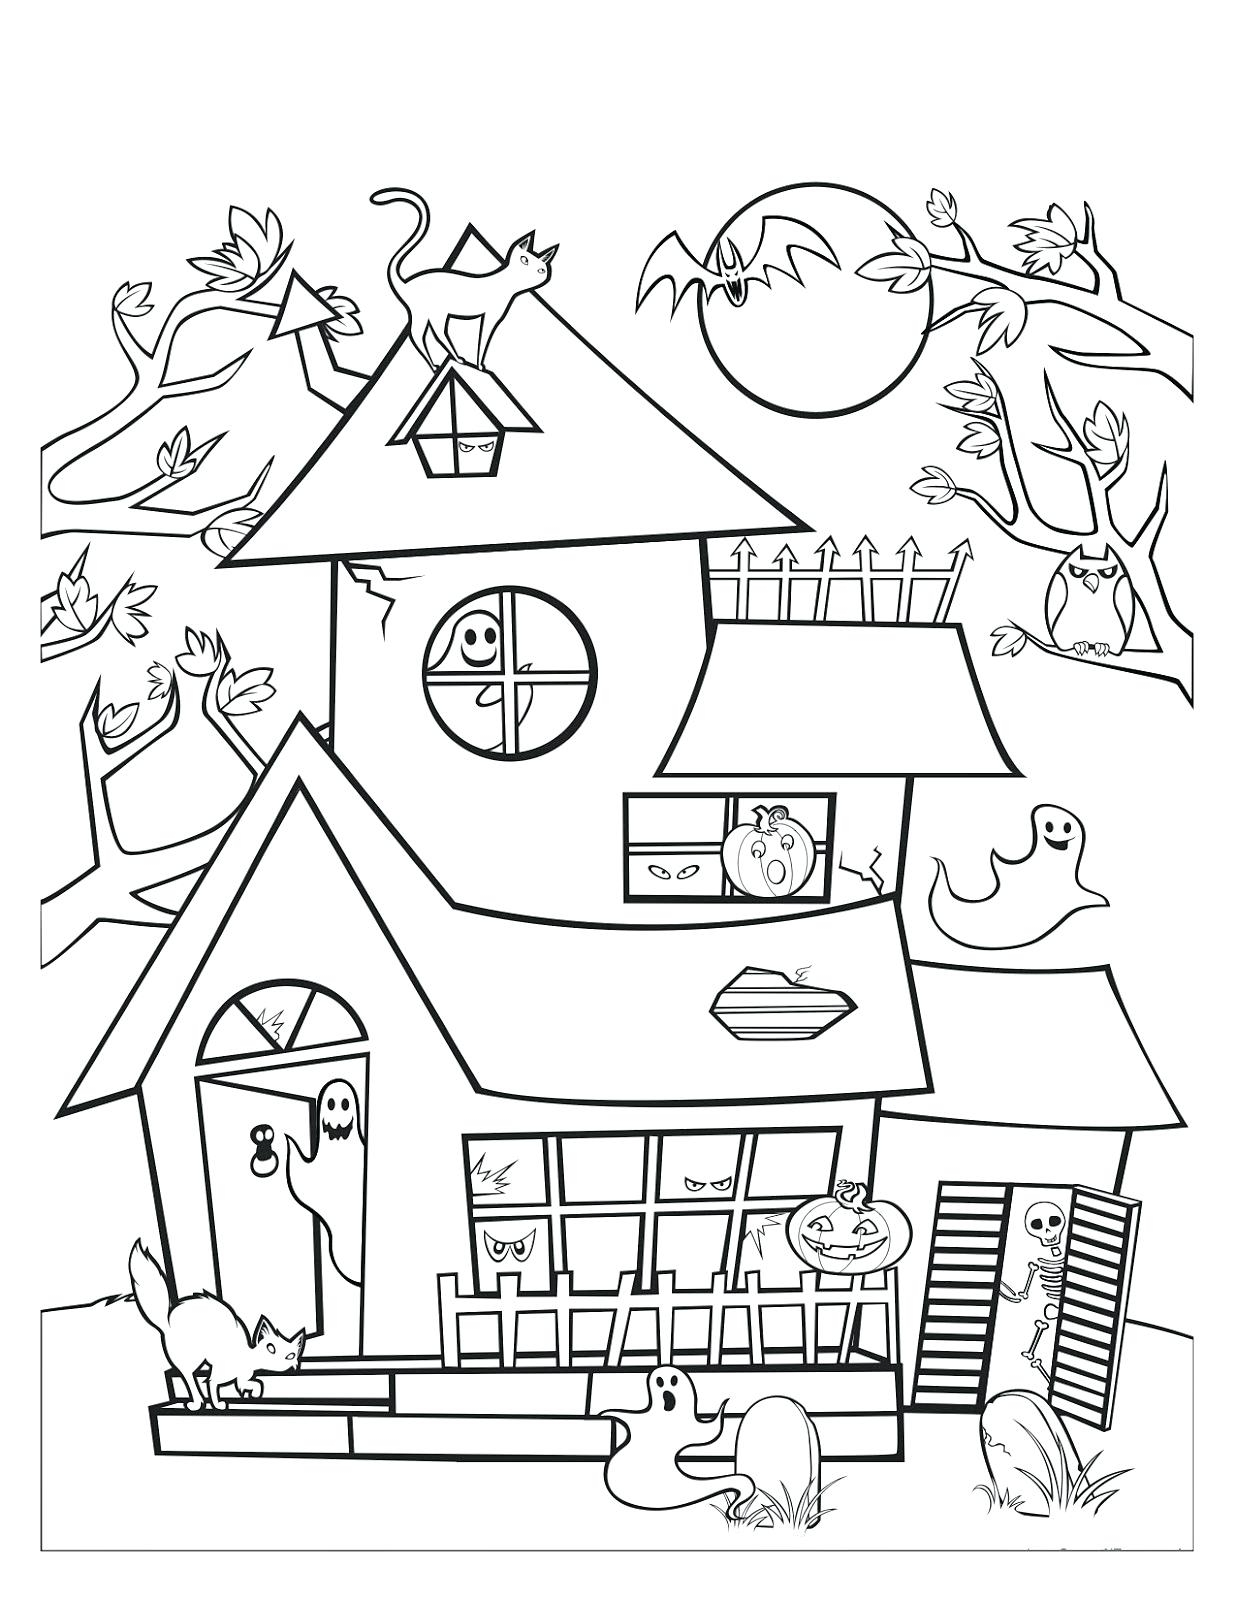 1236x1600 New Coloring Haunted House Coloring Pages Free Coloring Pages